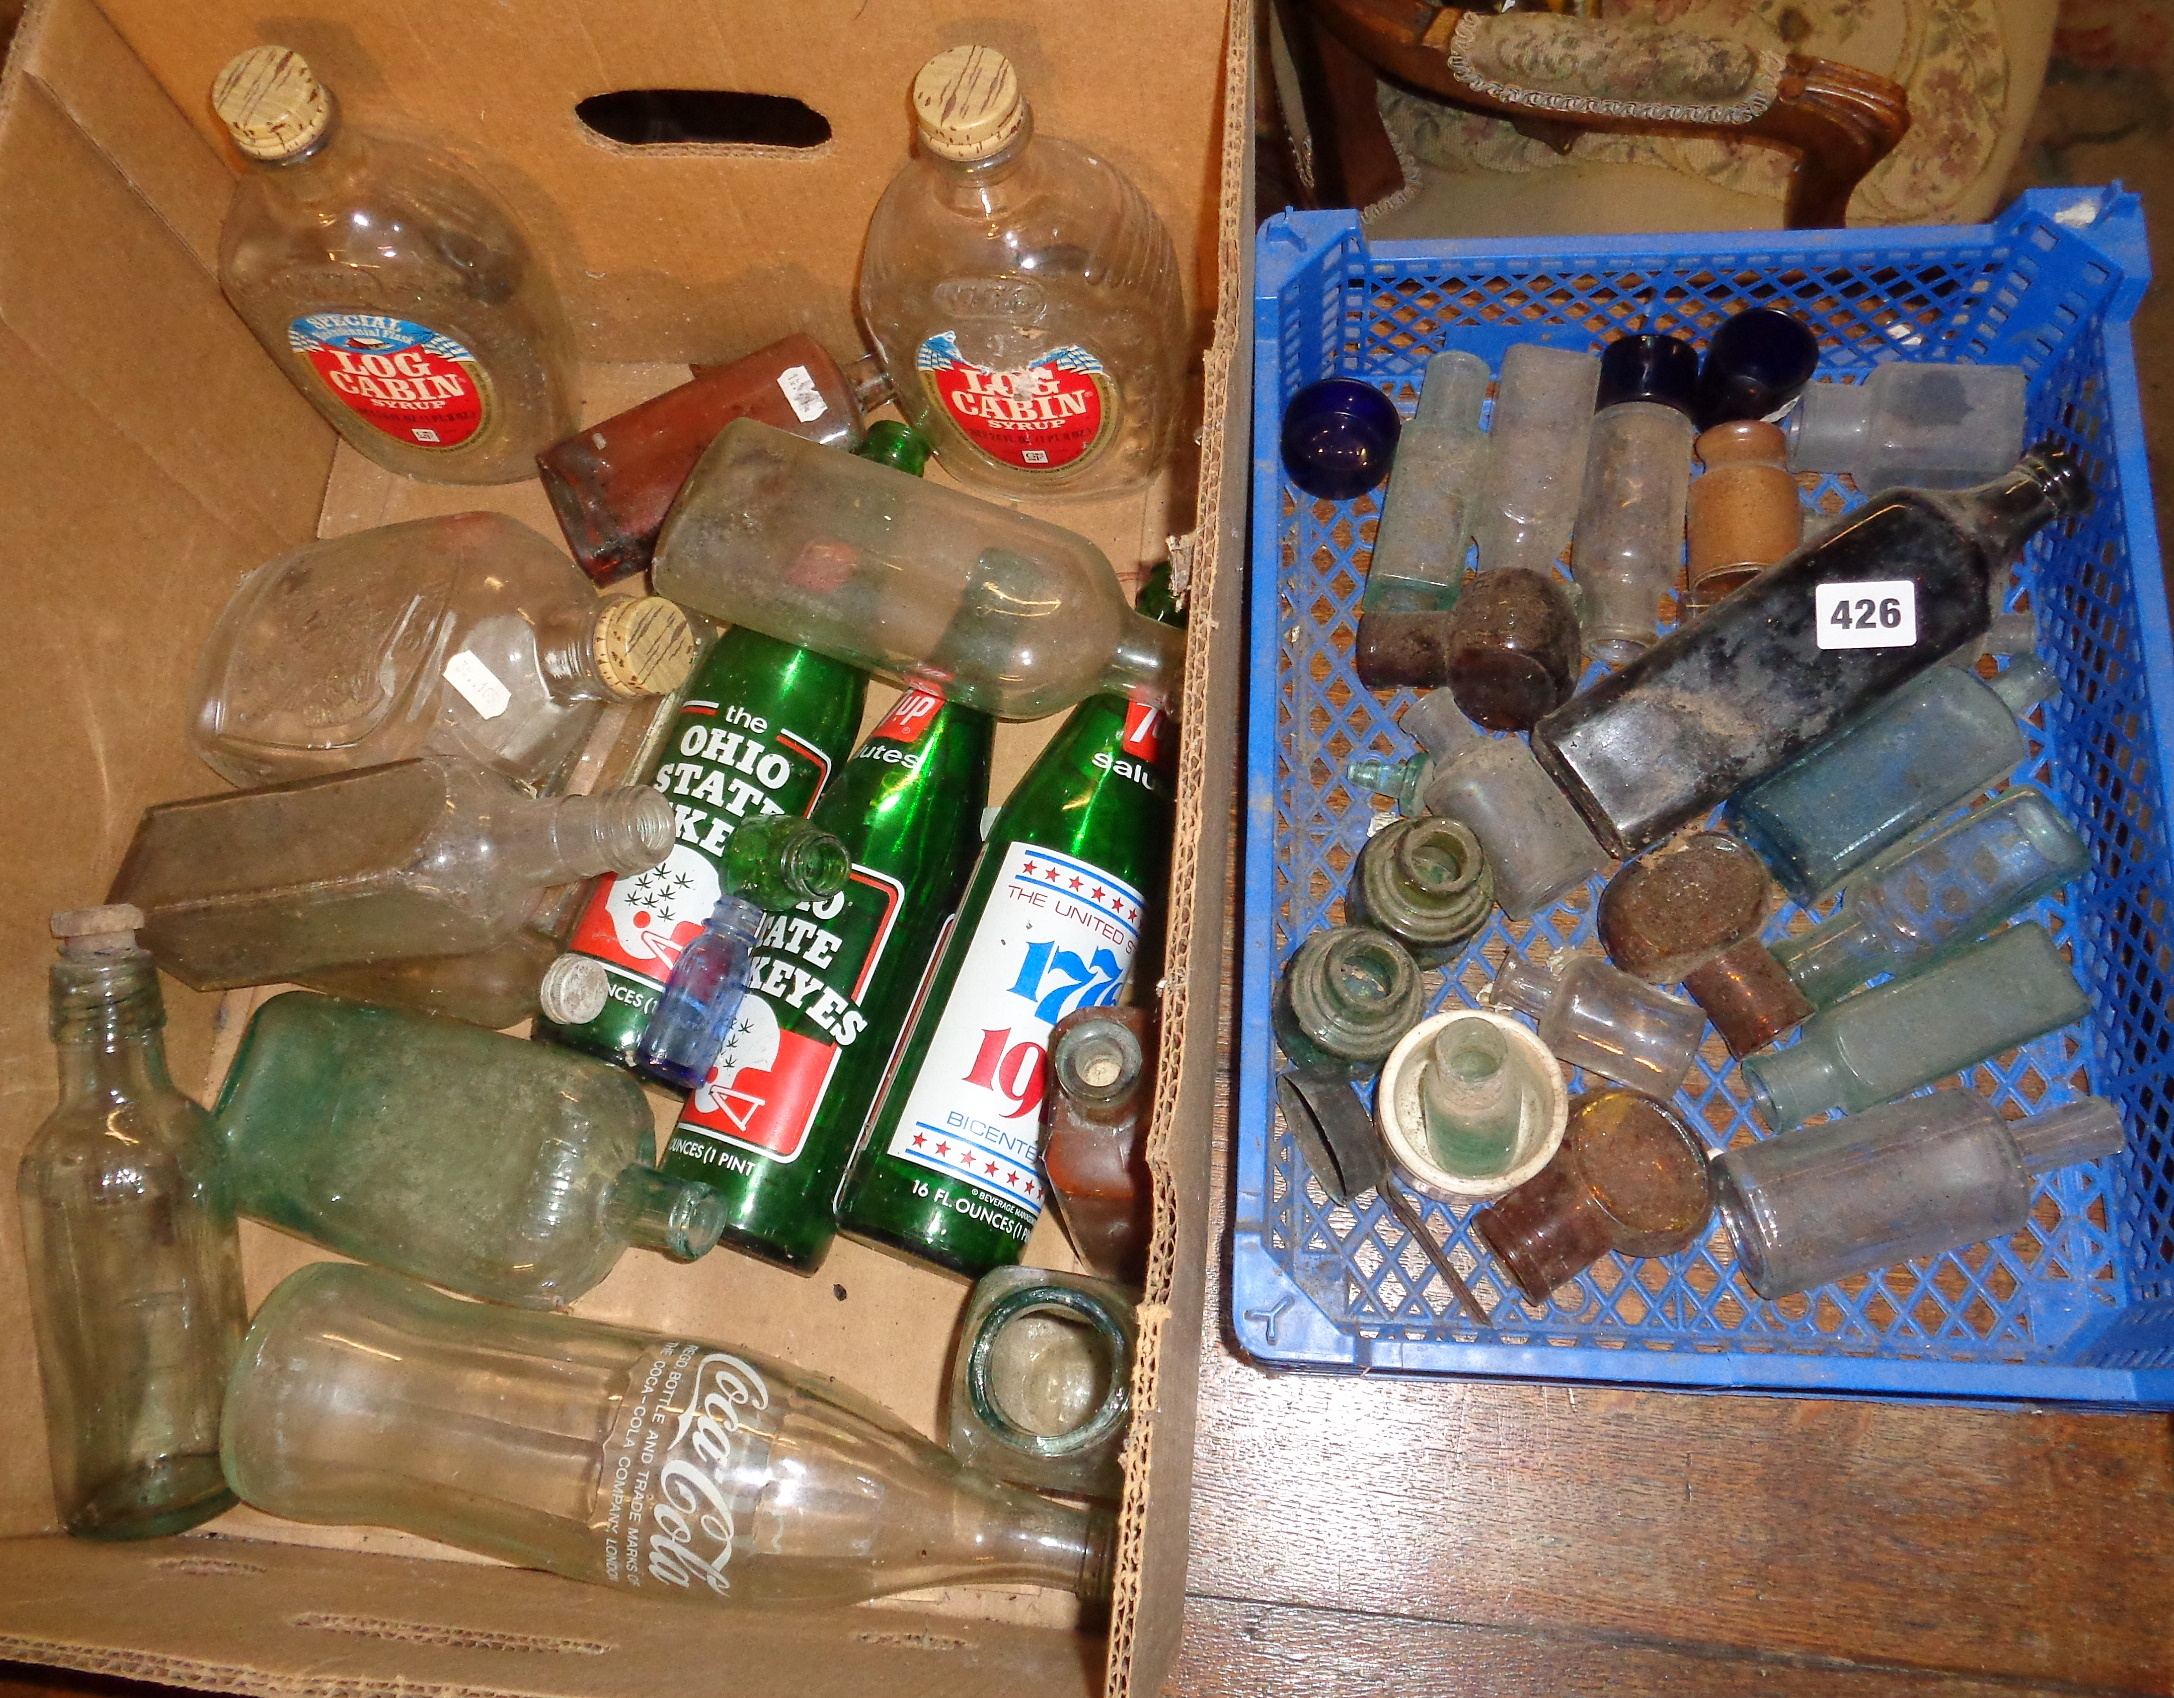 Lot 426 - Collection of assorted old bottles